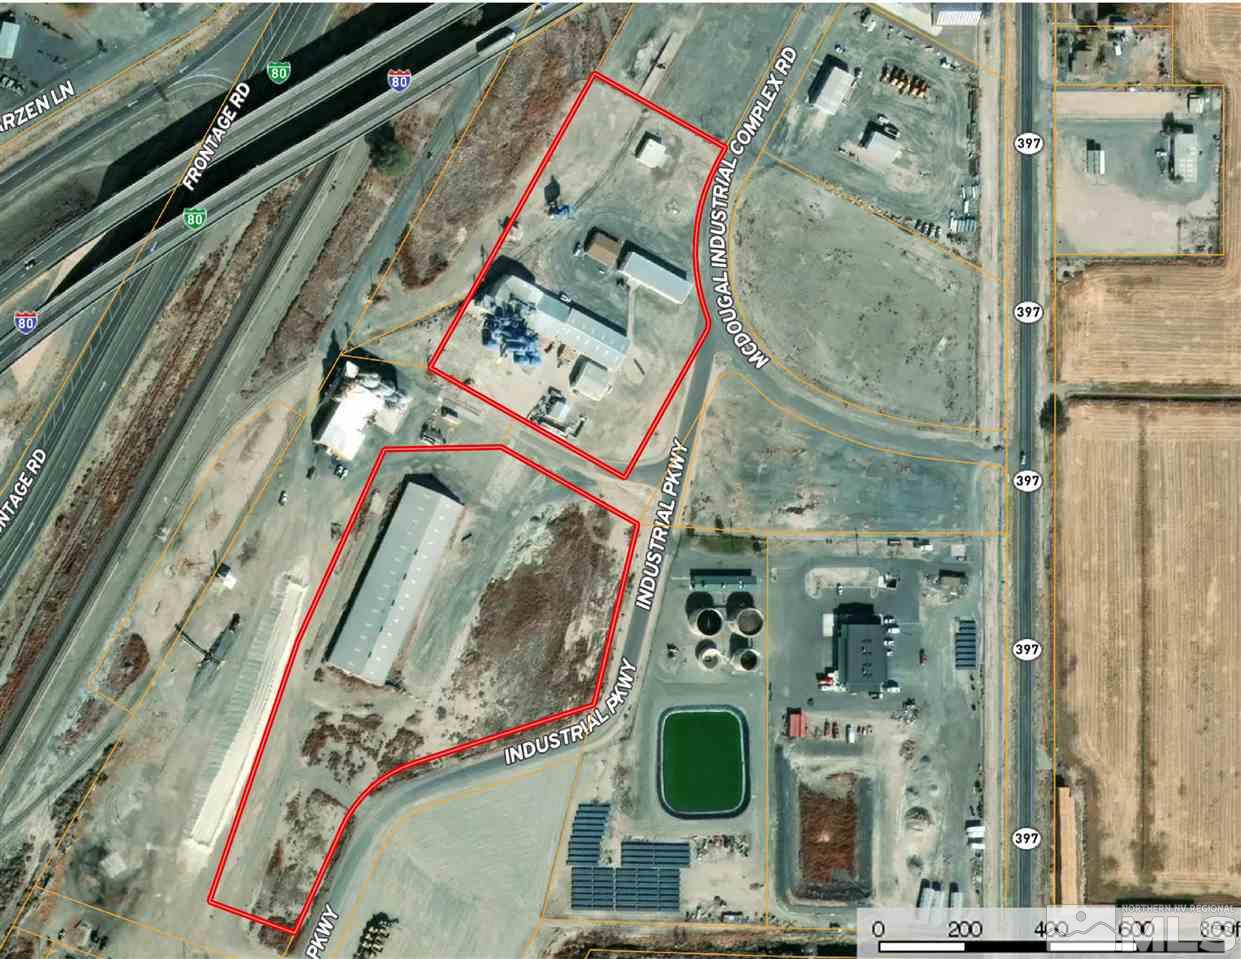 Image for 35 MCDOUGAL INDUSTRIAL COMPLEX, Lovelock, NV 89419